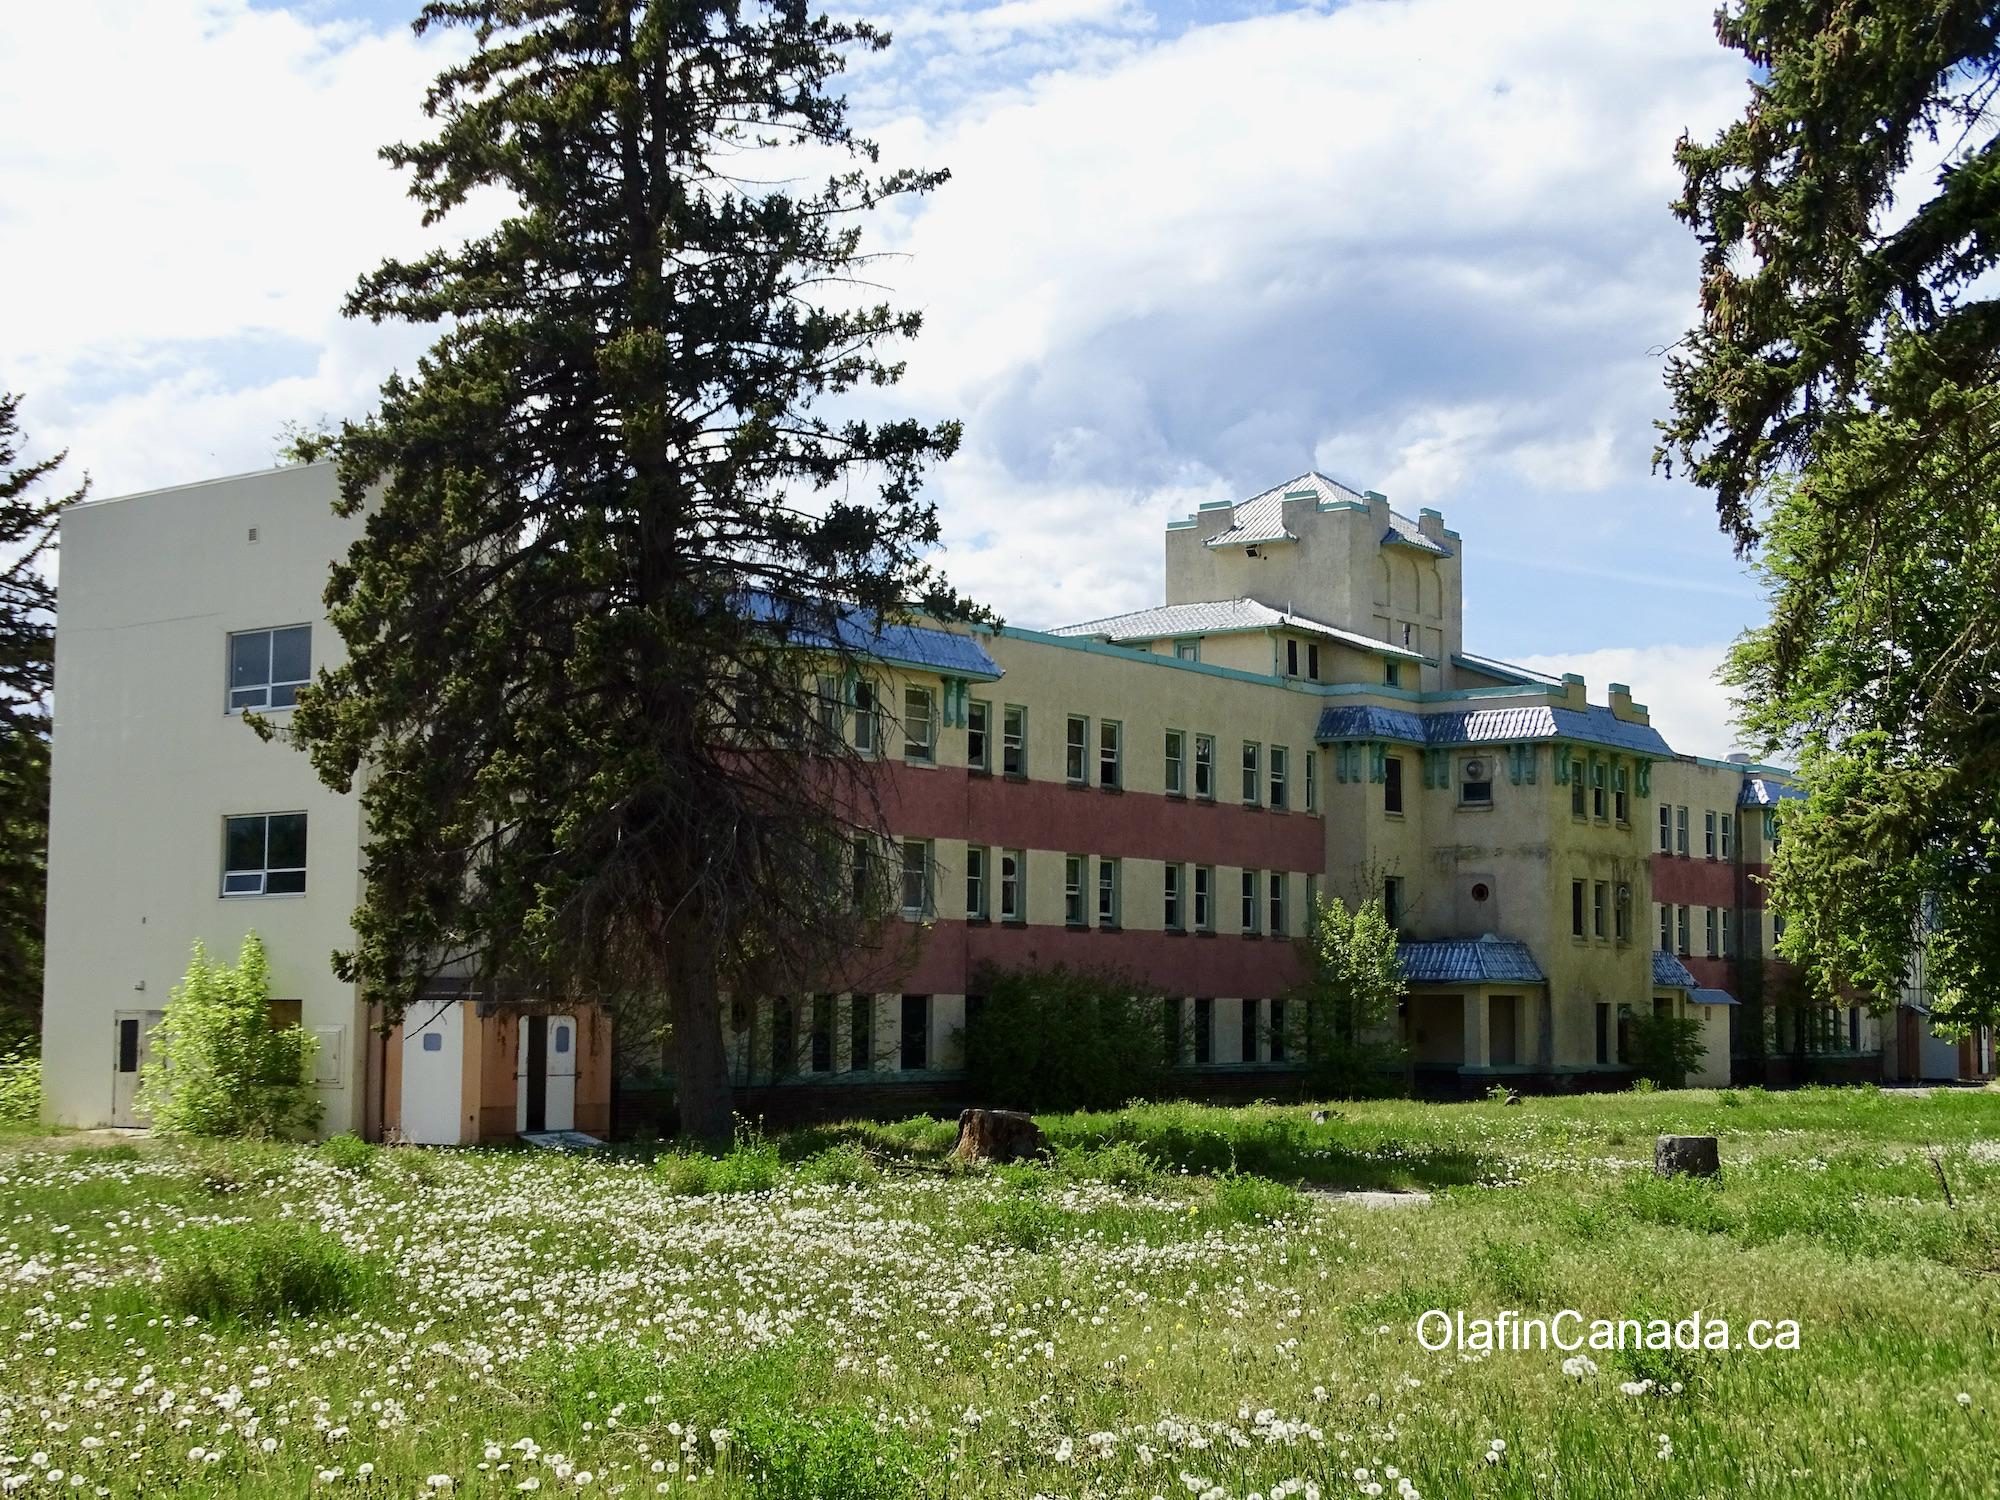 Greaves hospital in Tranquille, near Kamloops. #olafincanada #britishcolumbia #discoverbc #abandonedbc #tranquille